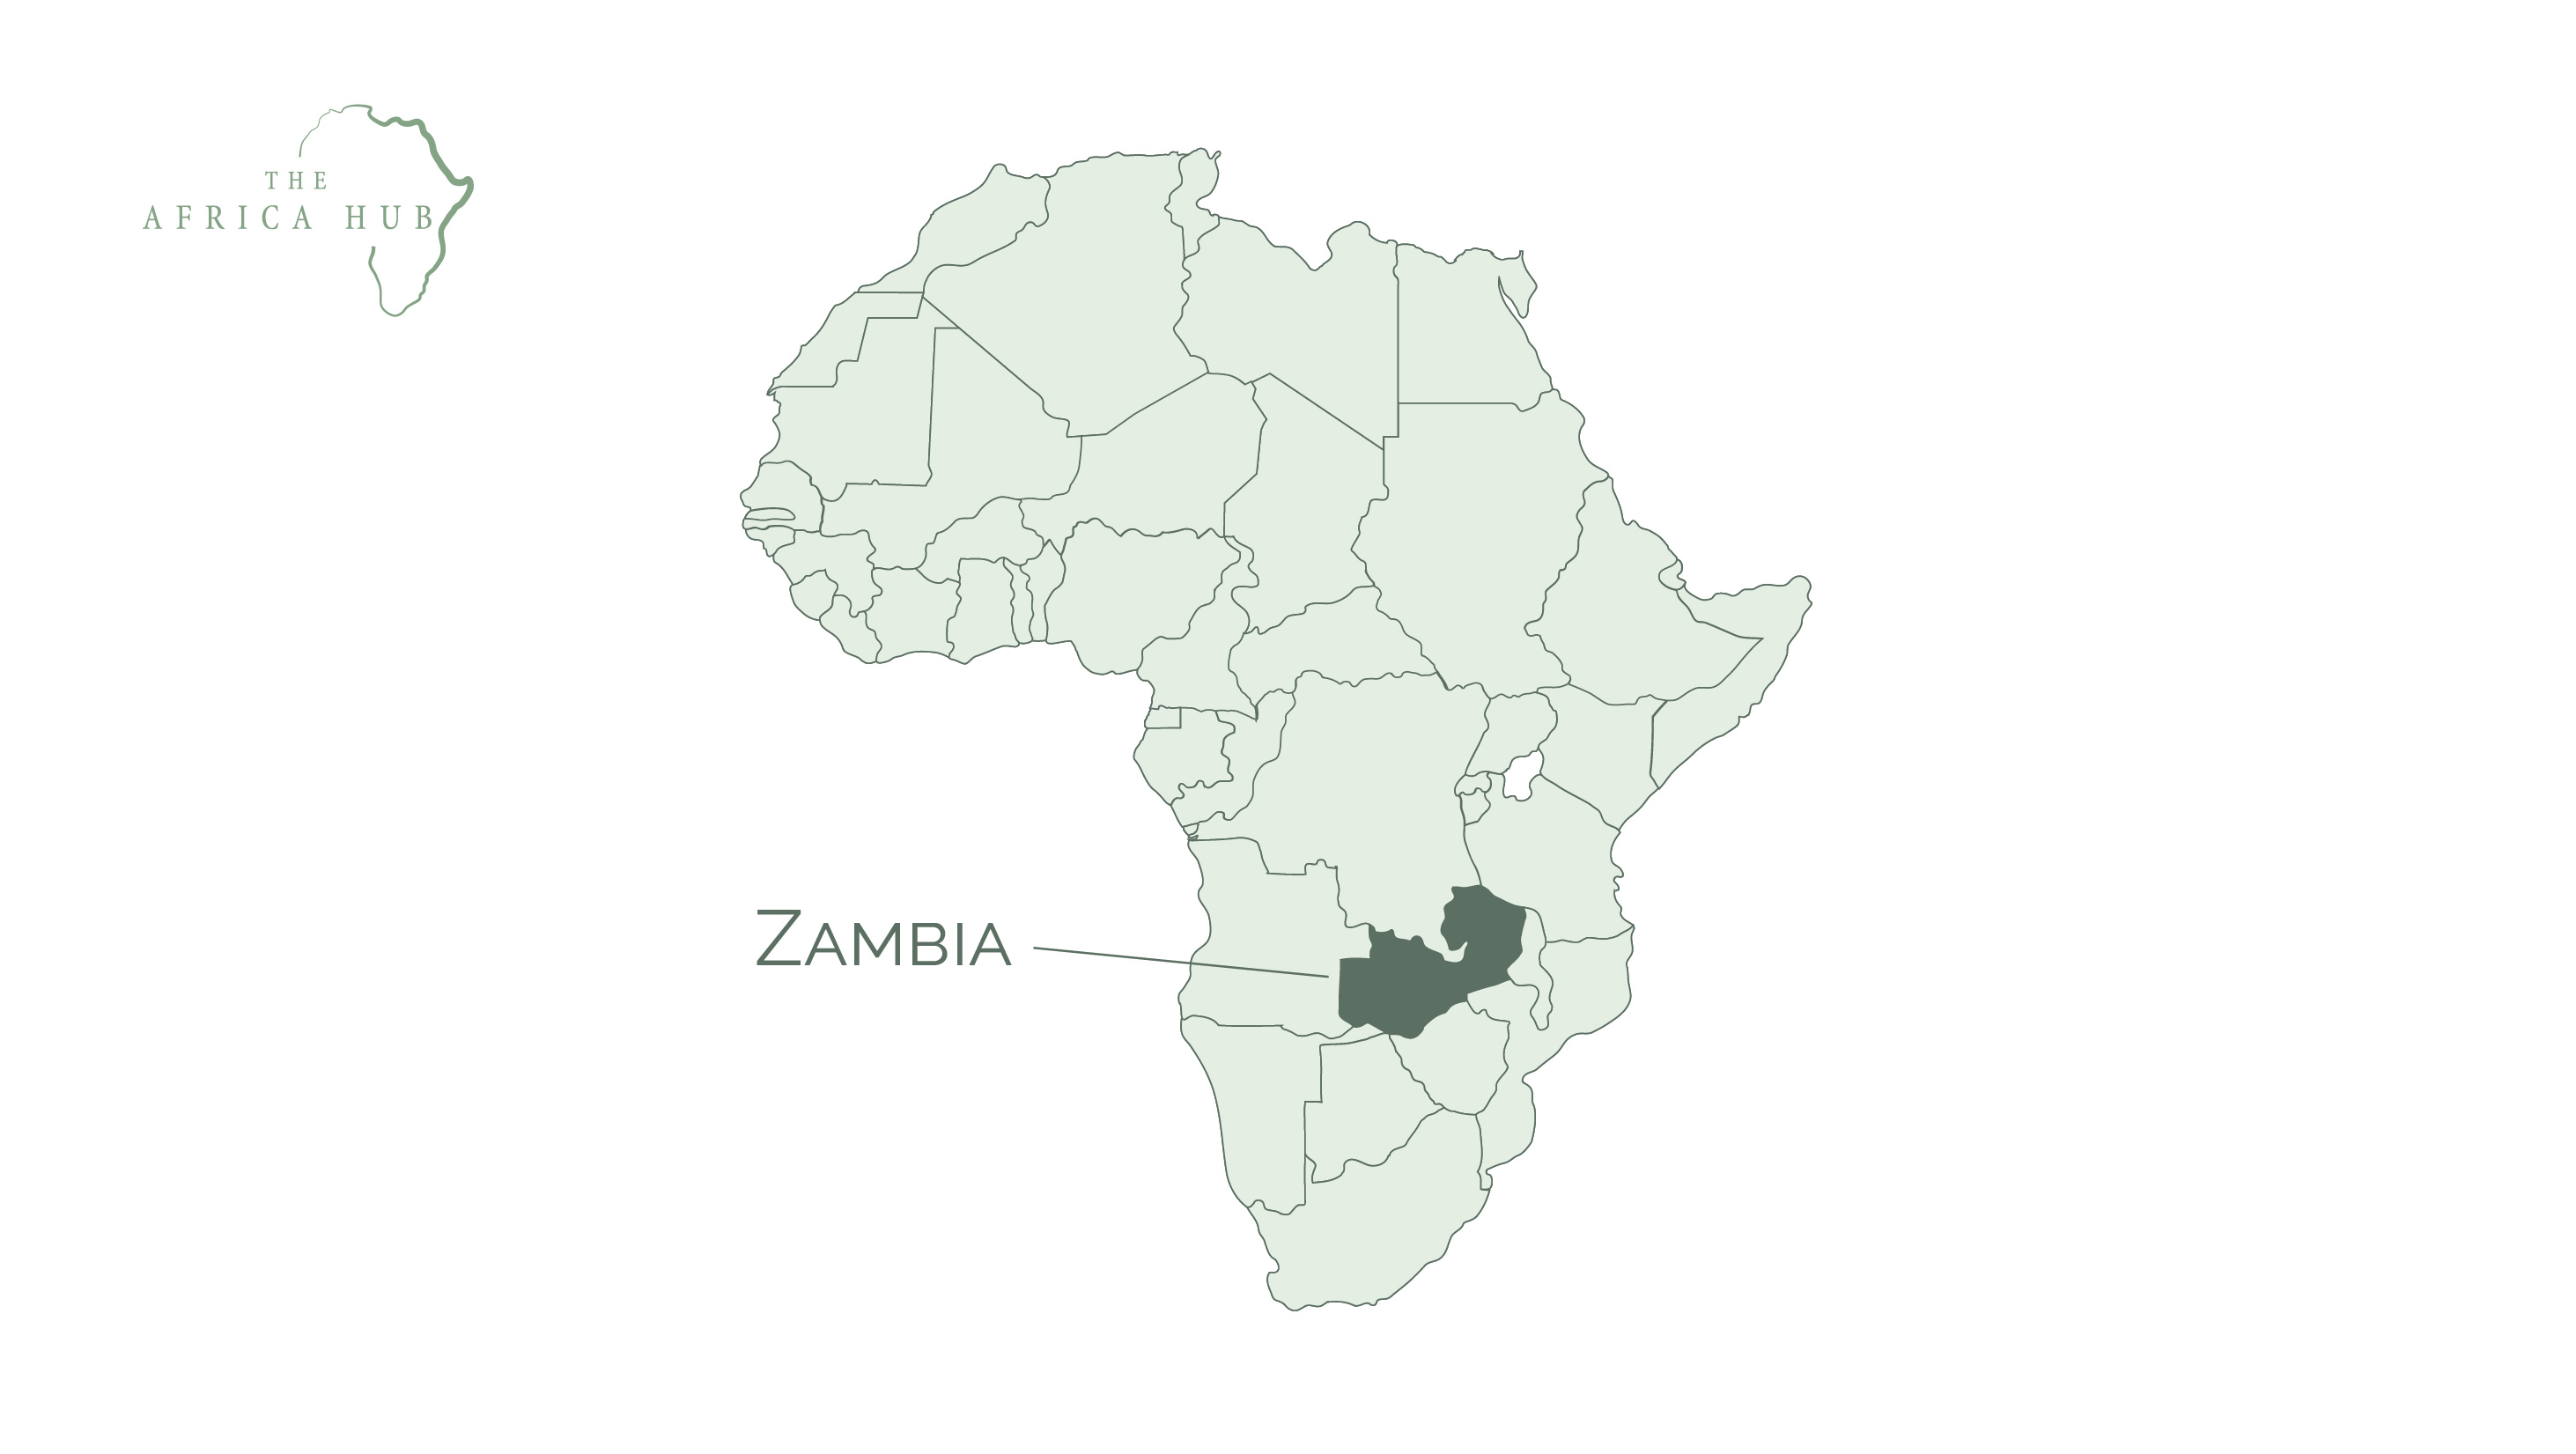 Map of Africa with Zambia highlighted